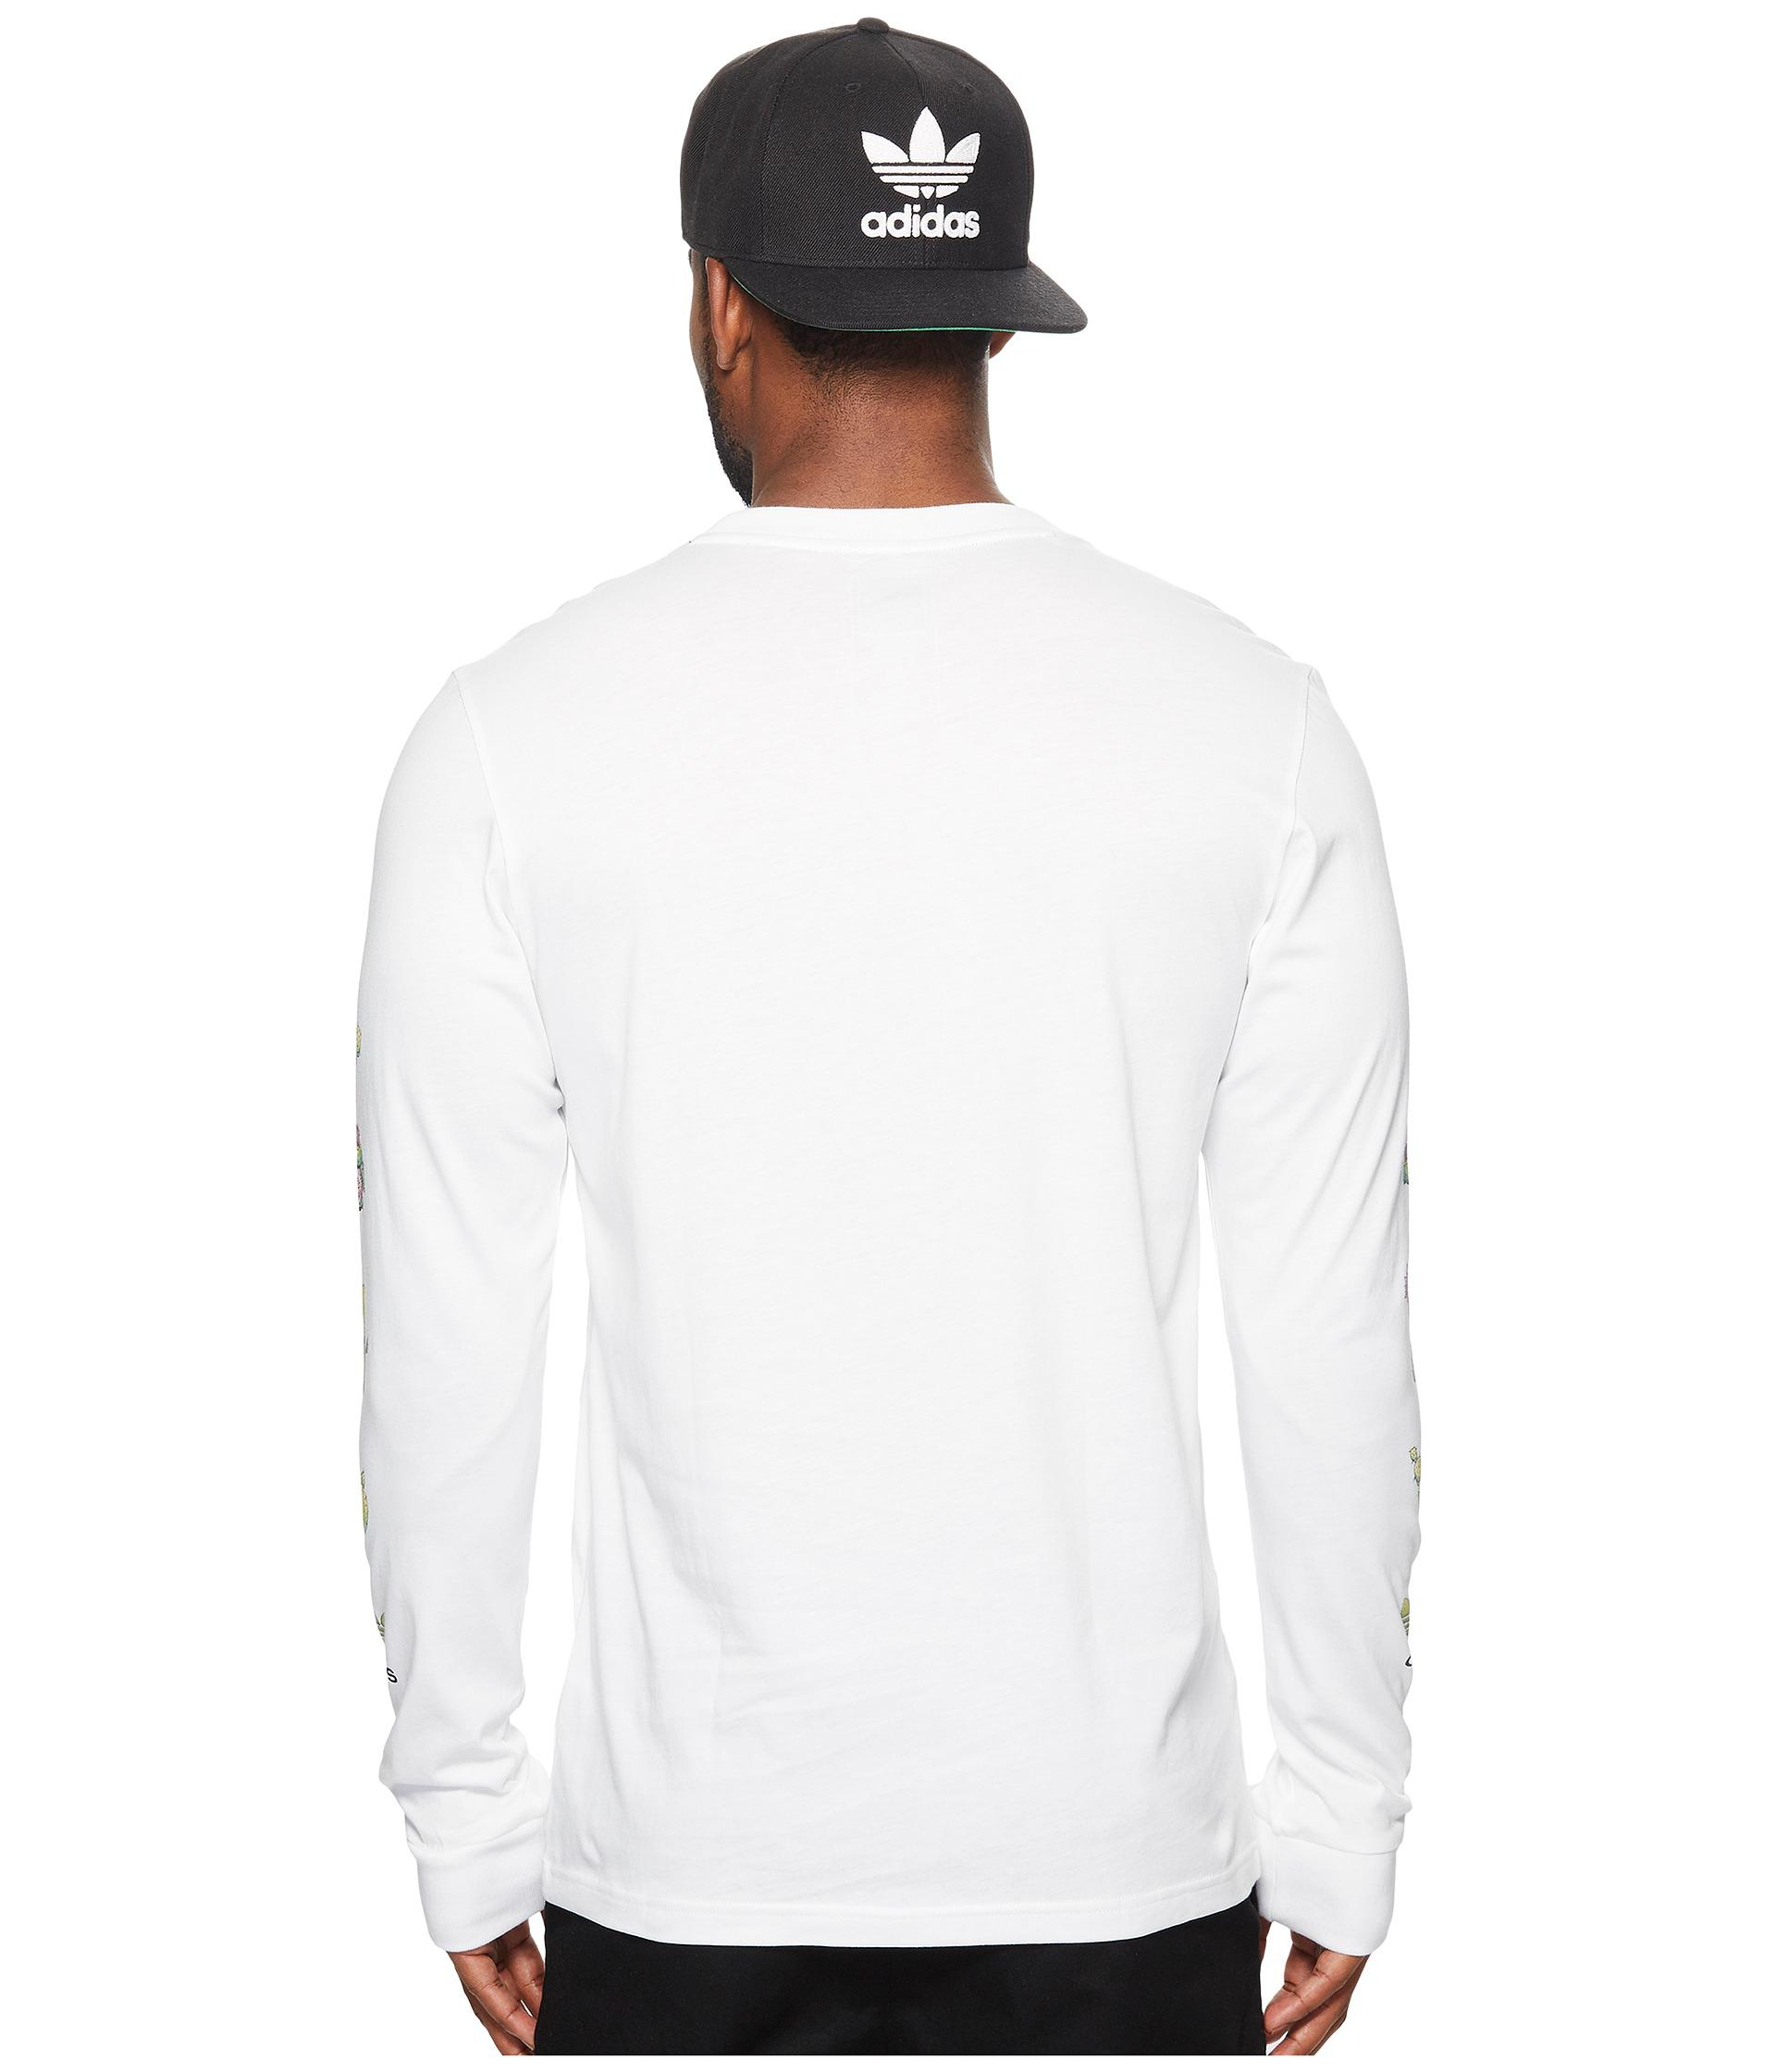 f0d35c687742 Adidas Originals Mens Cactus Long Sleeve T Shirt White | Saddha